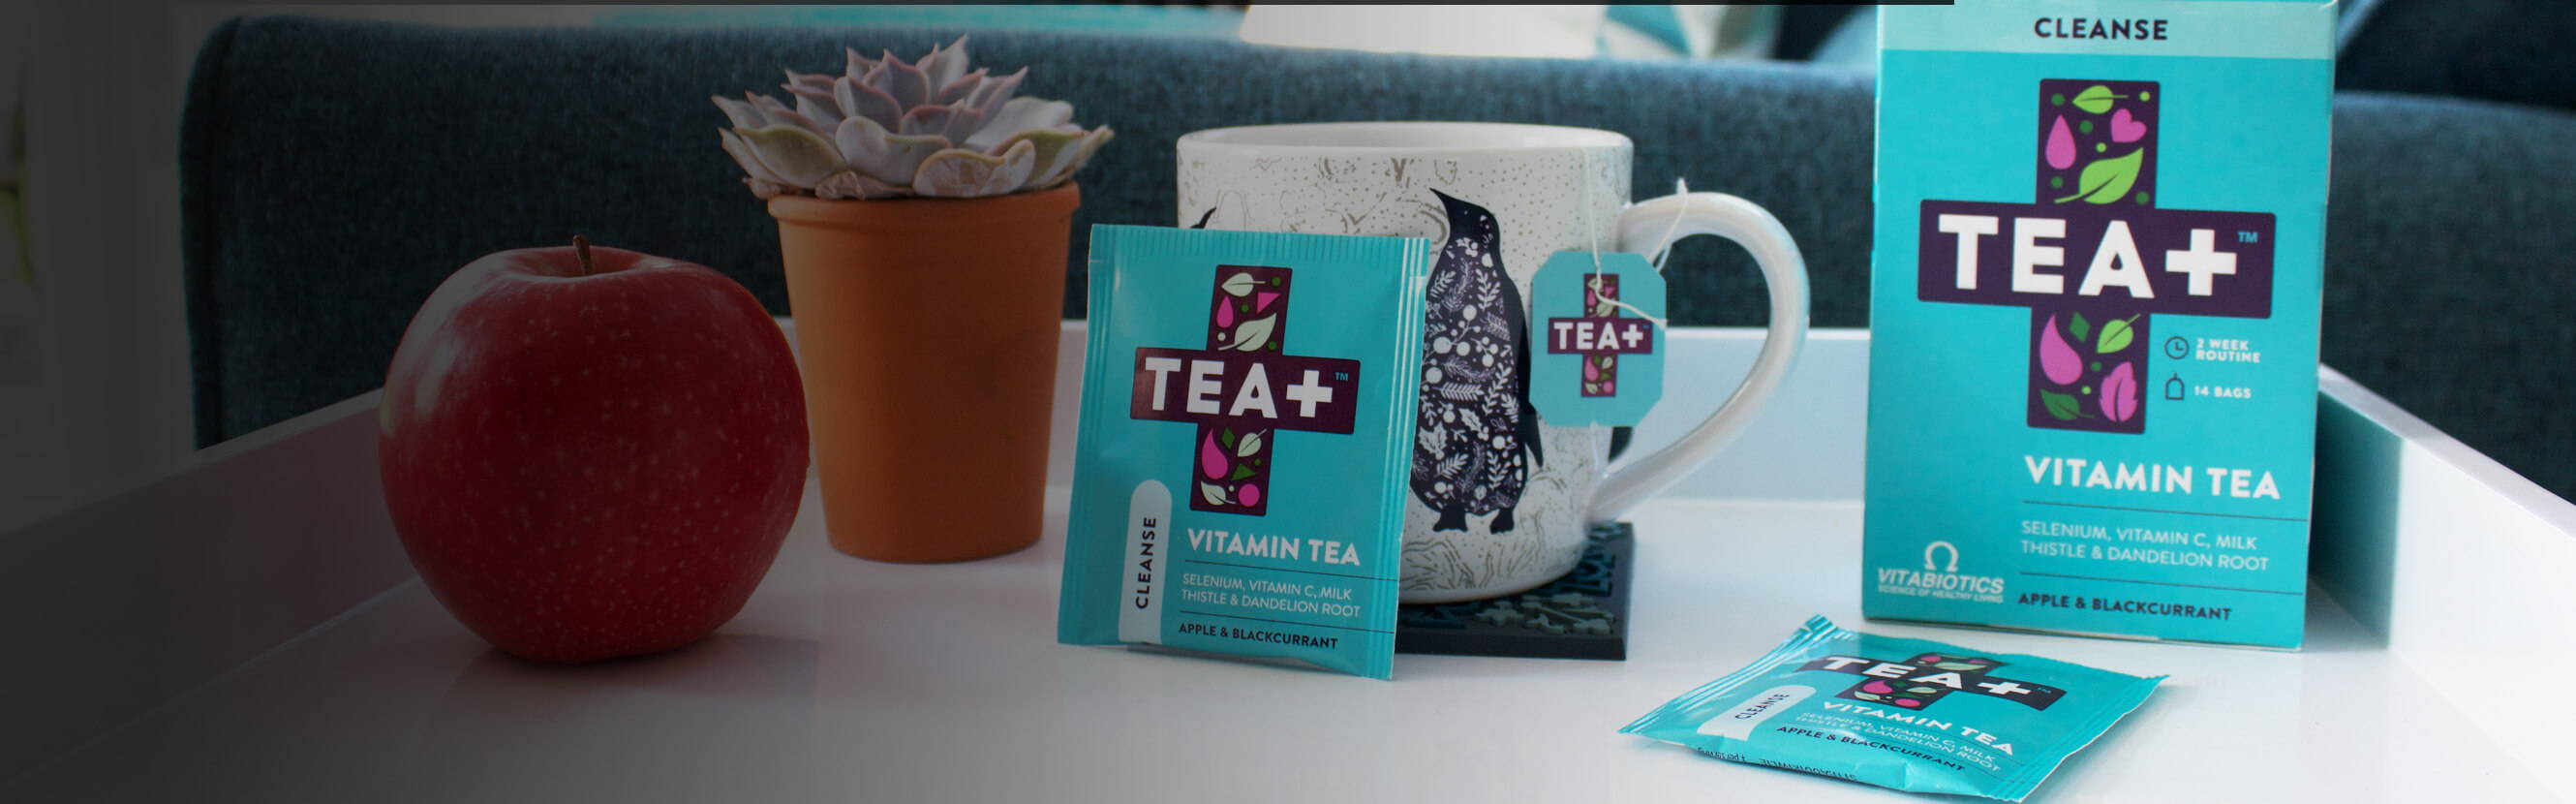 TEA+ Cleanse Vitamin Tea is a delicious way to achieve your daily wellness goals with a blend of green tea, herbs, fruit and Vitamin C and Selenium which contribute to the protection of cells from oxidative stress.